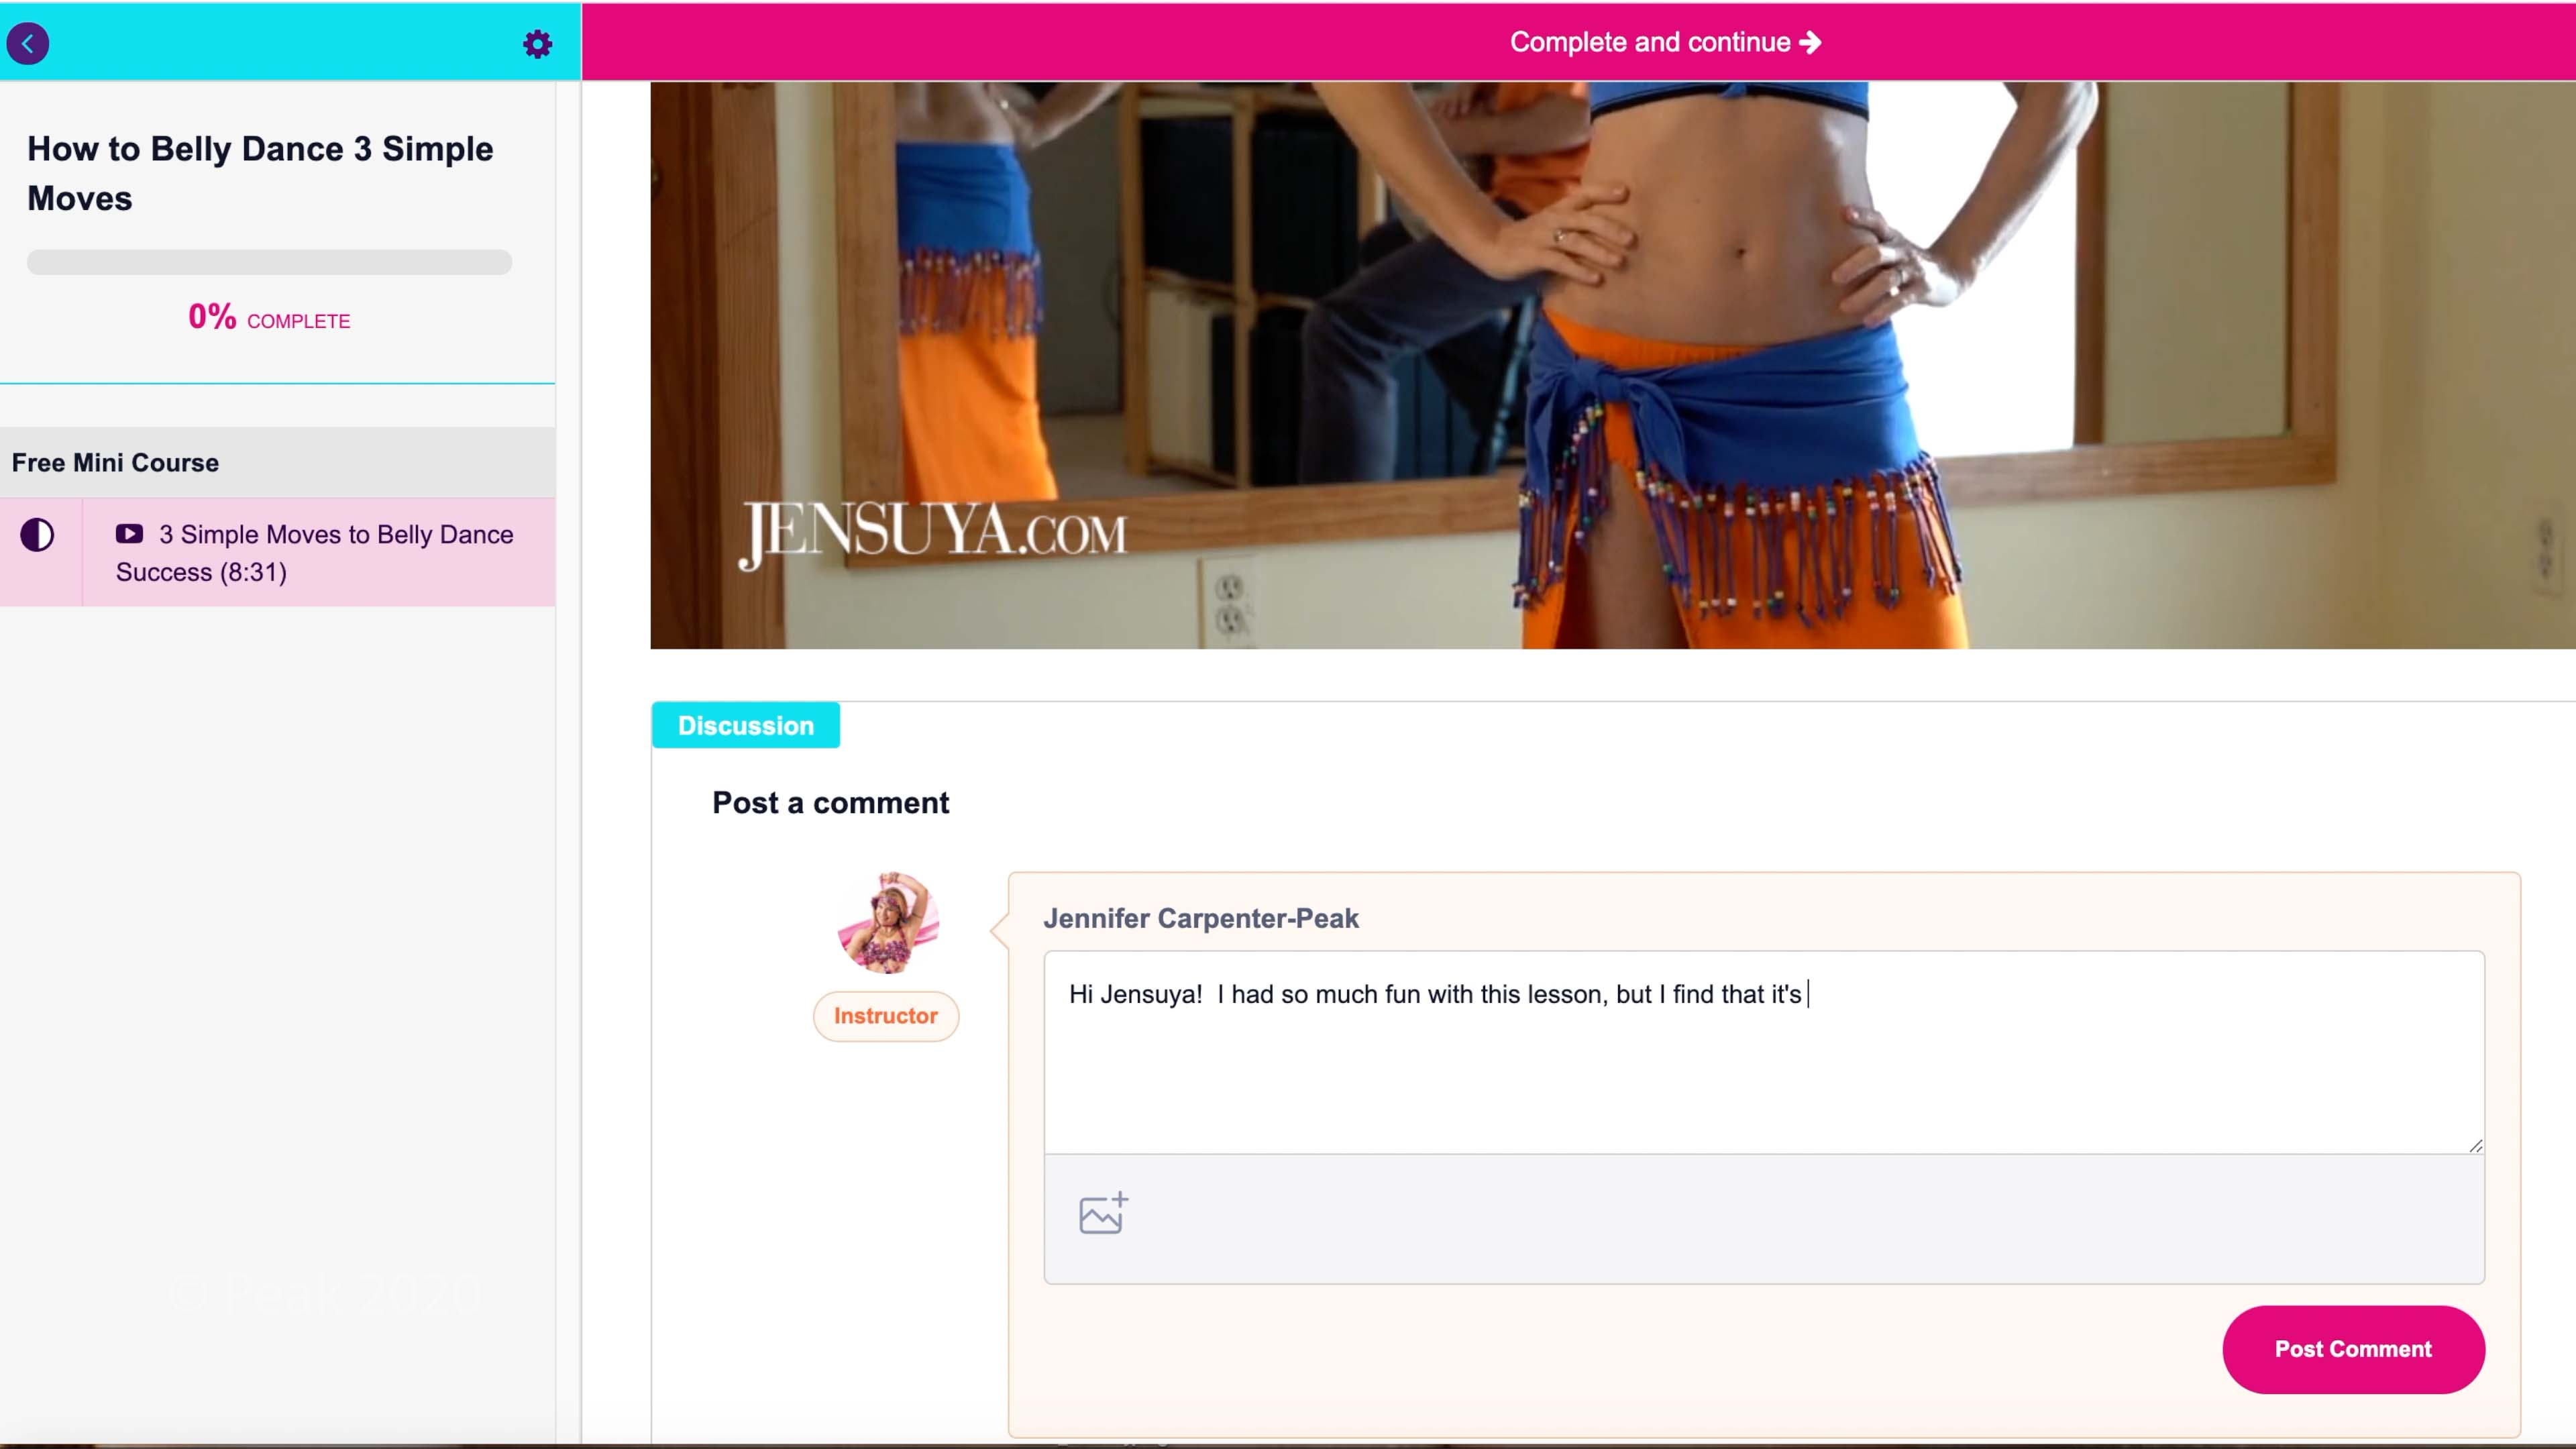 video lesson comment section of online belly dance course with question being written